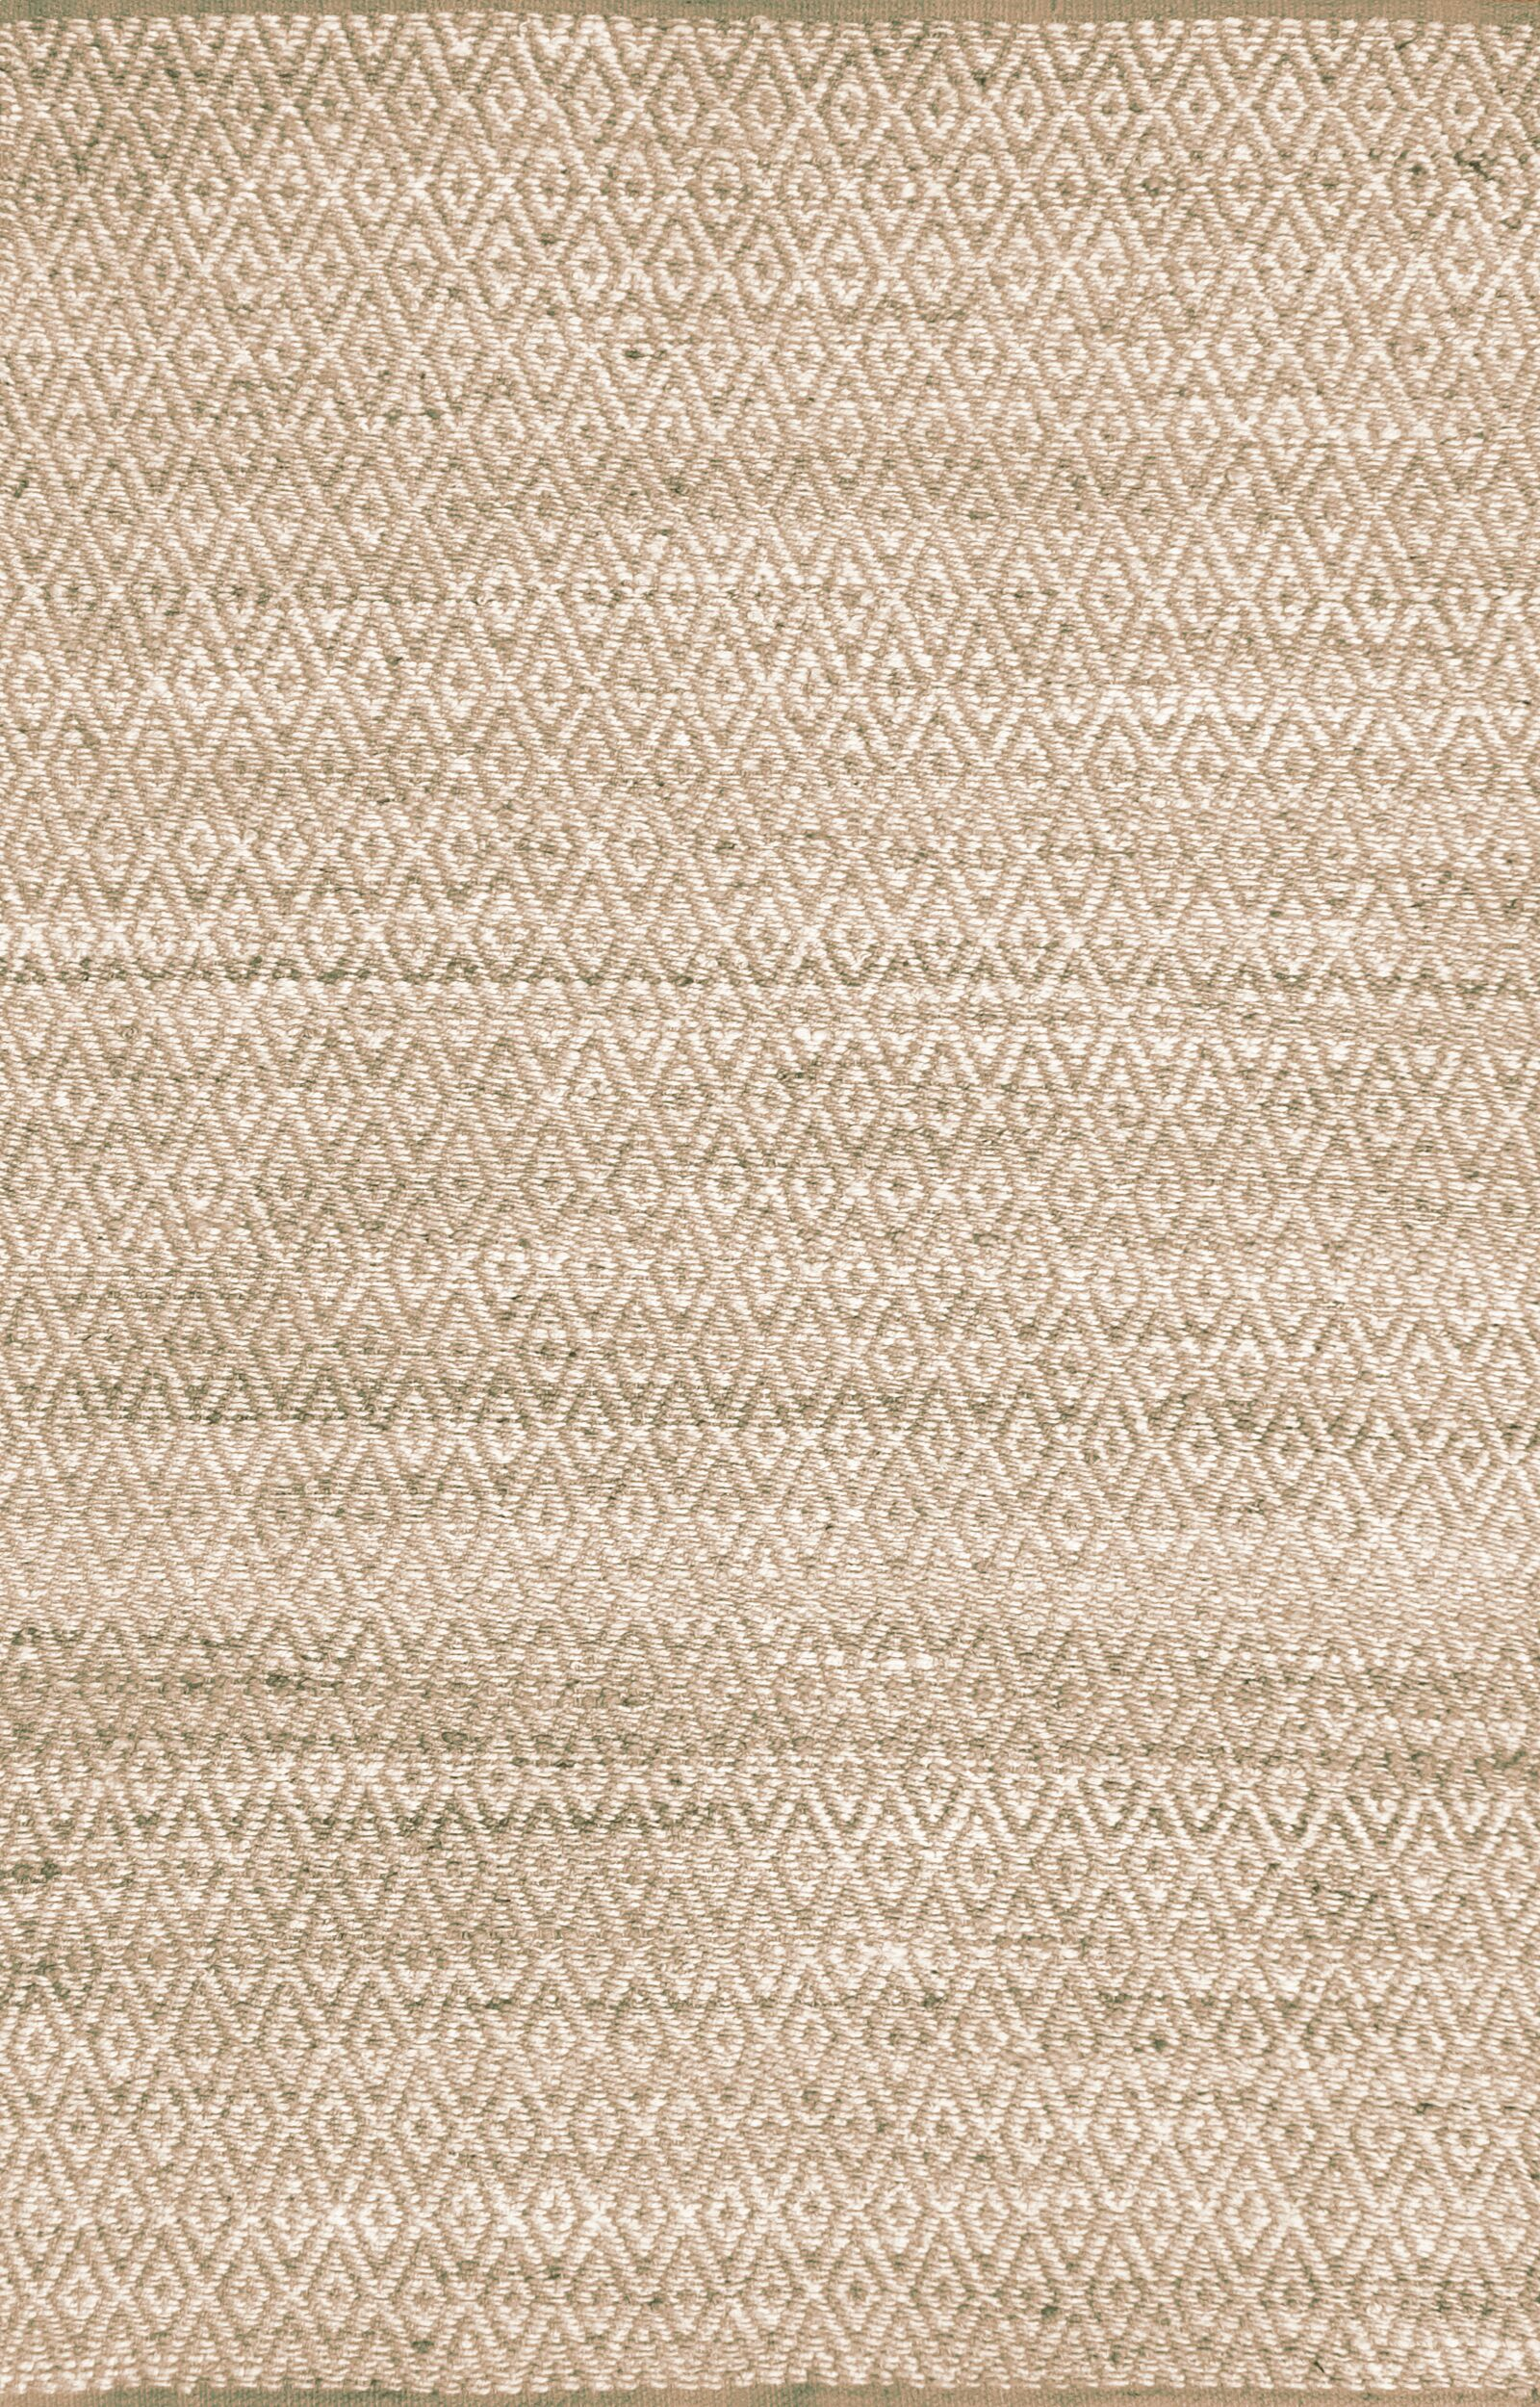 Azaria Hand-Woven Ivory Area Rug Rug Size: Rectangle 4' x 6'